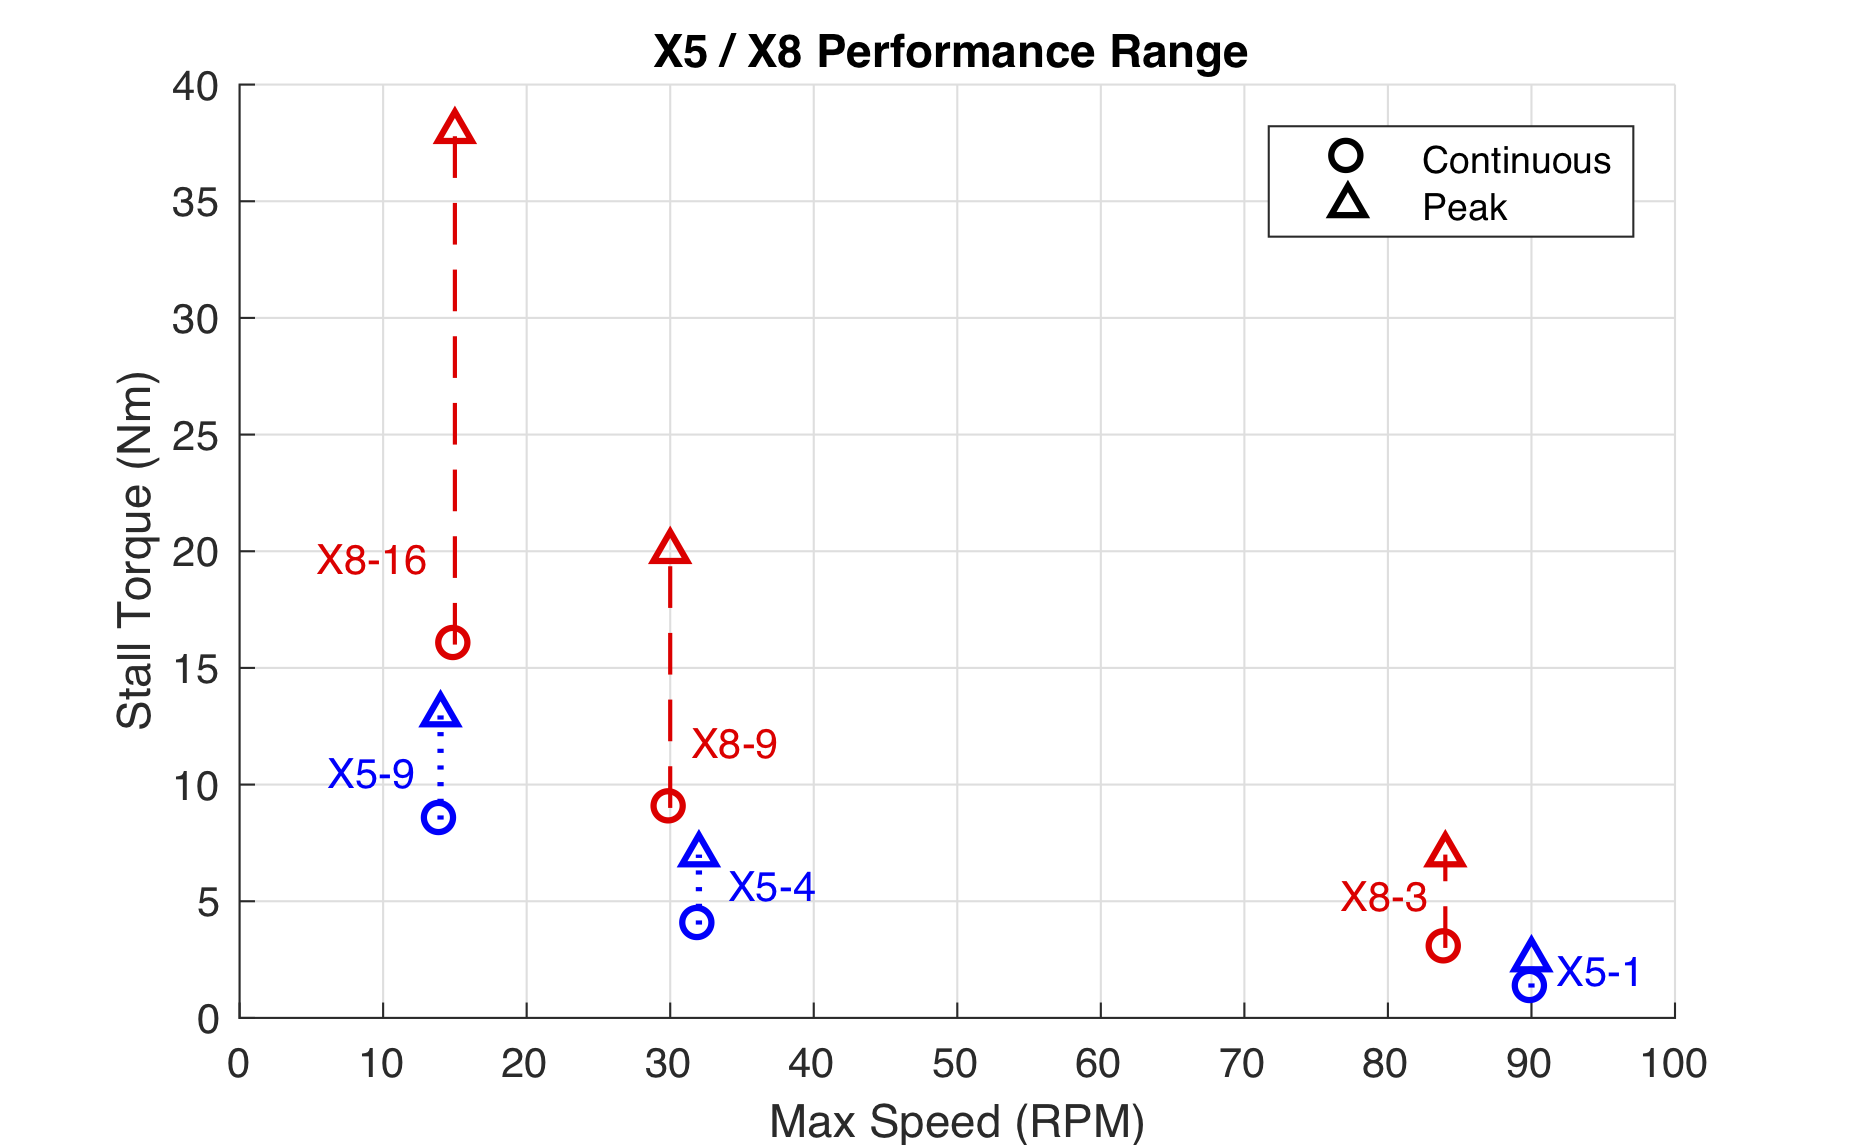 X5 X8 Performance Range